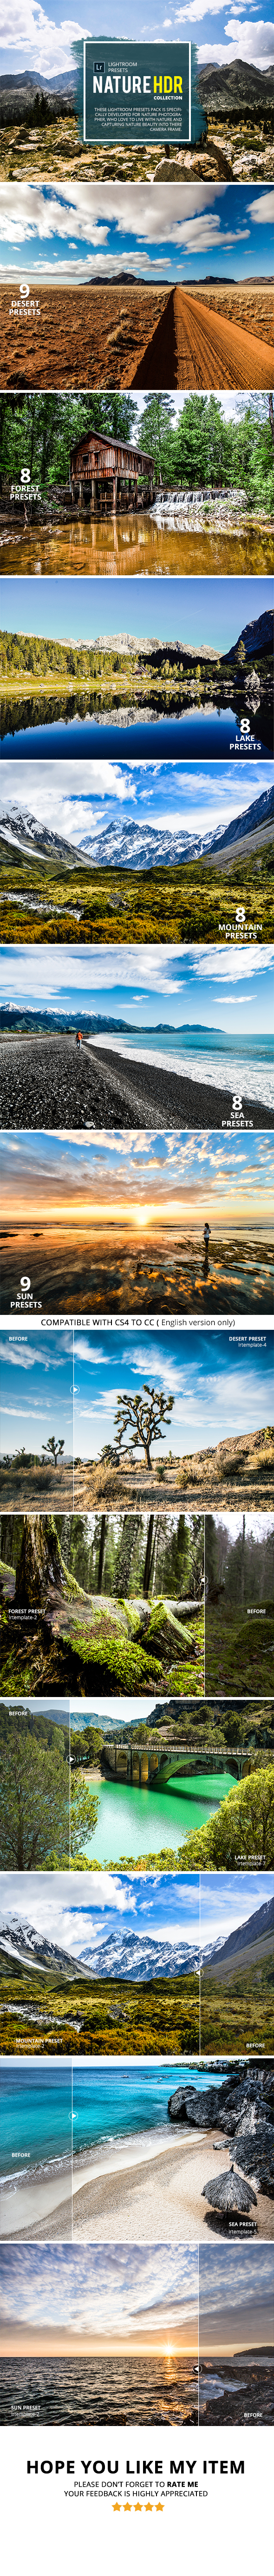 GraphicRiver Nature HDR Collection Lightroom Presets 20623893